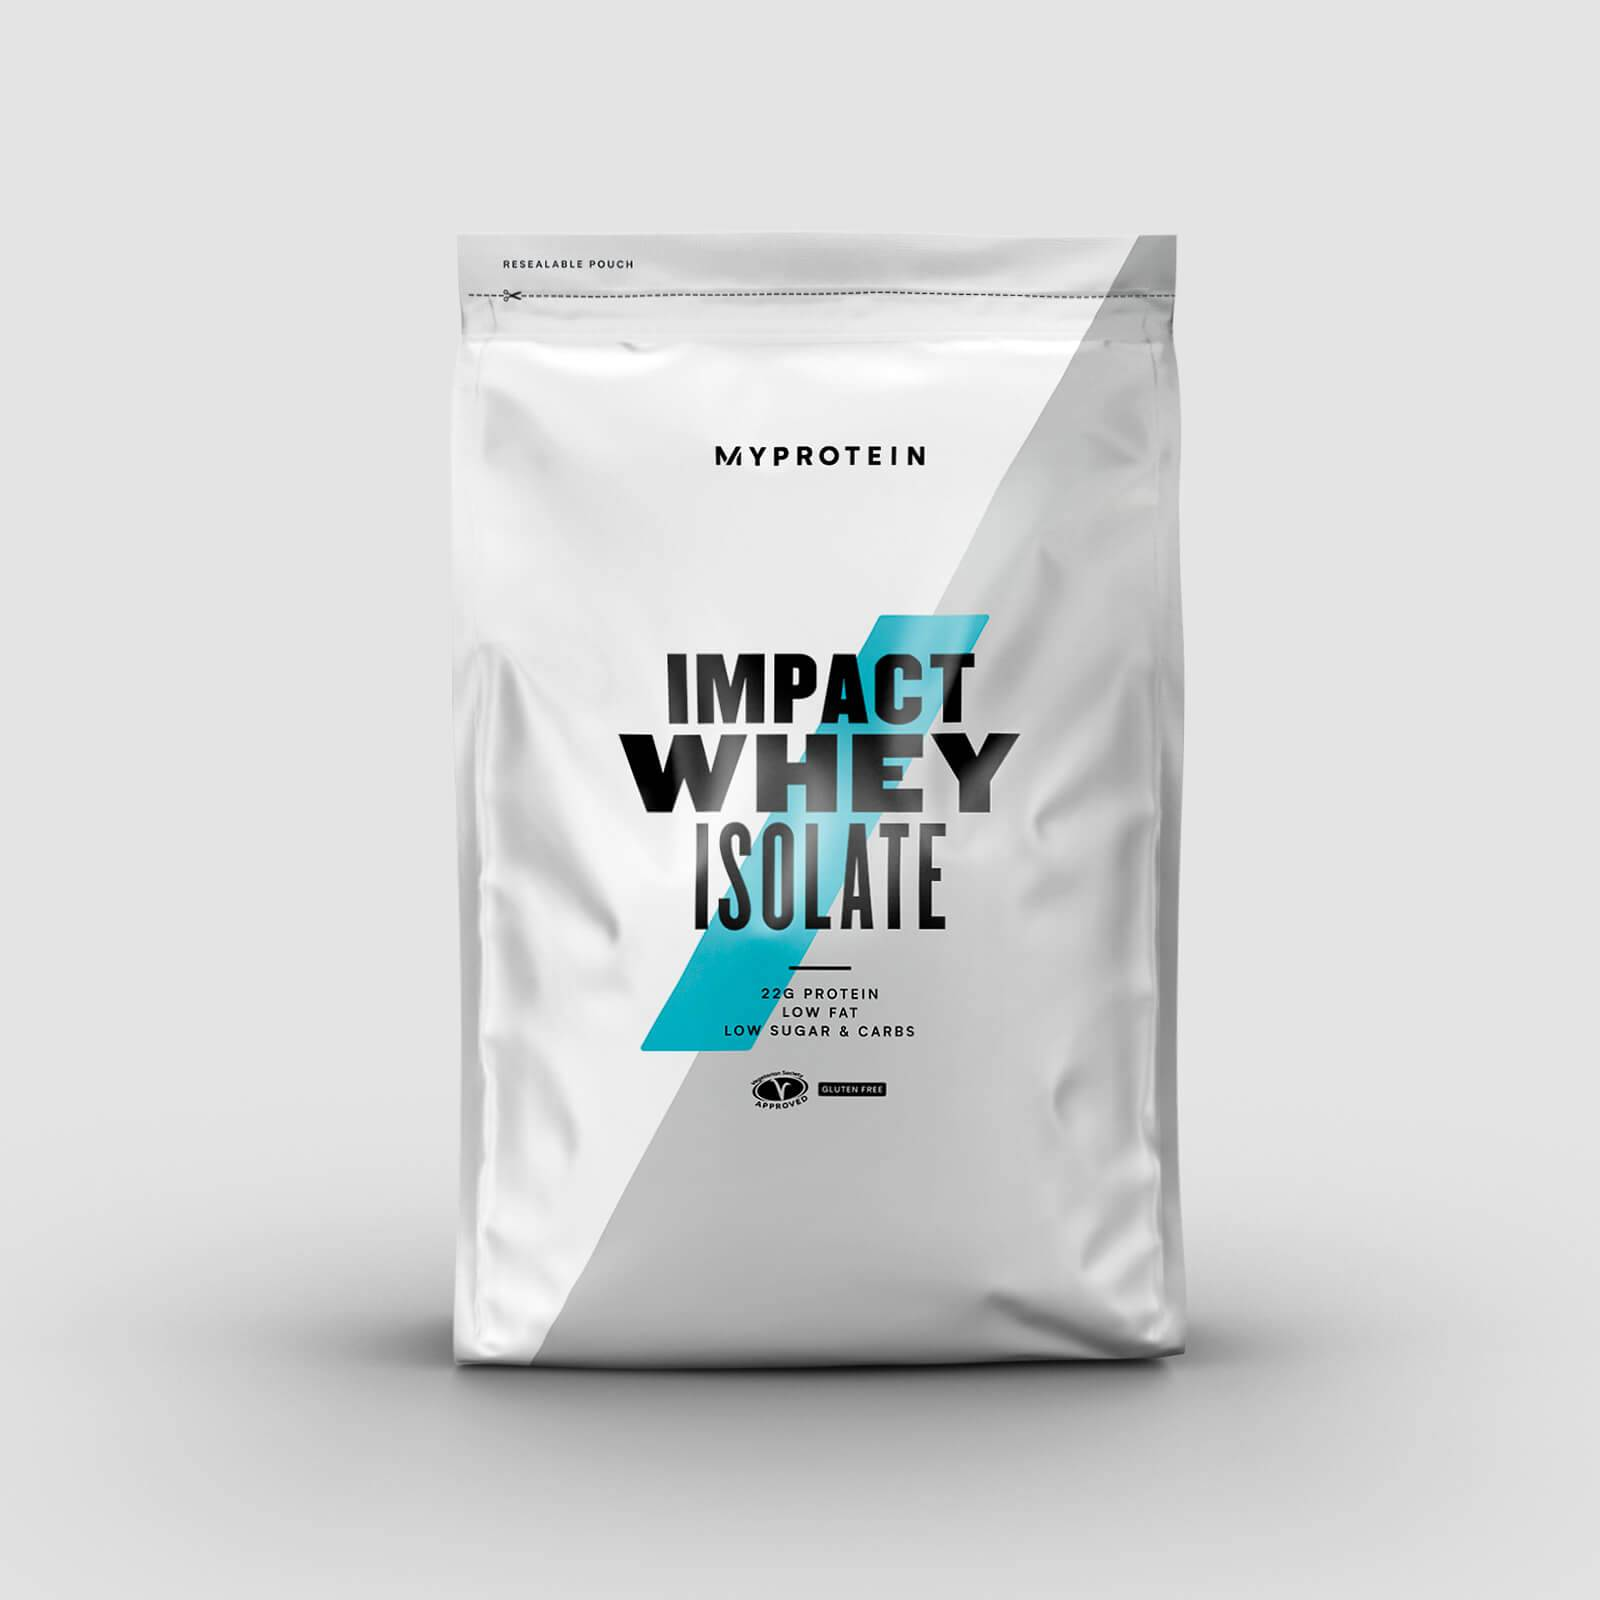 Myprotein Impact Whey Isolate - 2.5kg - Myrtille